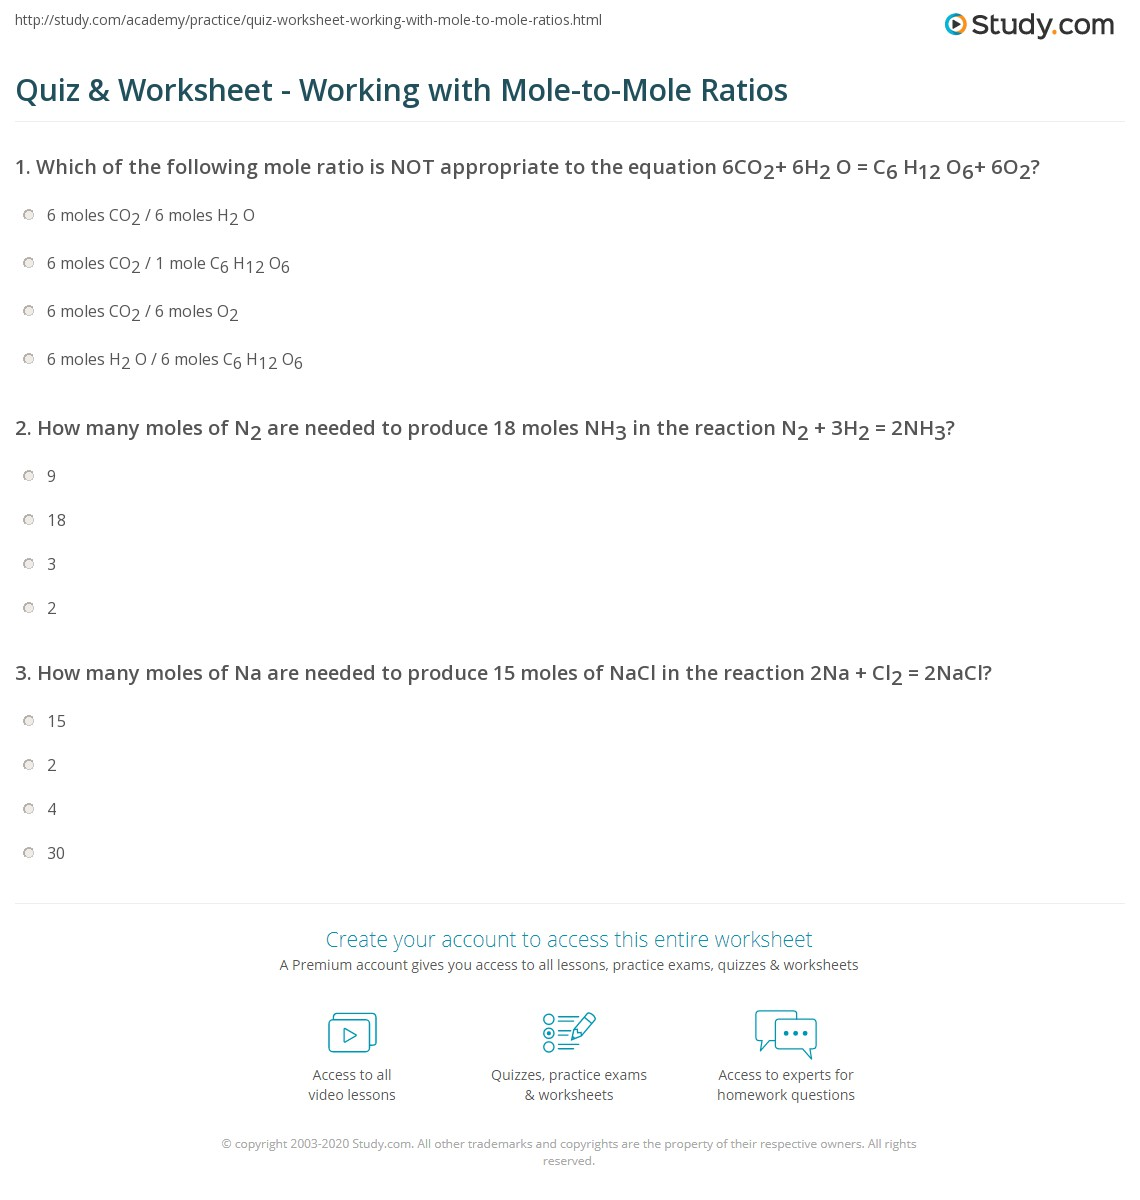 Quiz & Worksheet - Working with Mole-to-Mole Ratios | Study.com